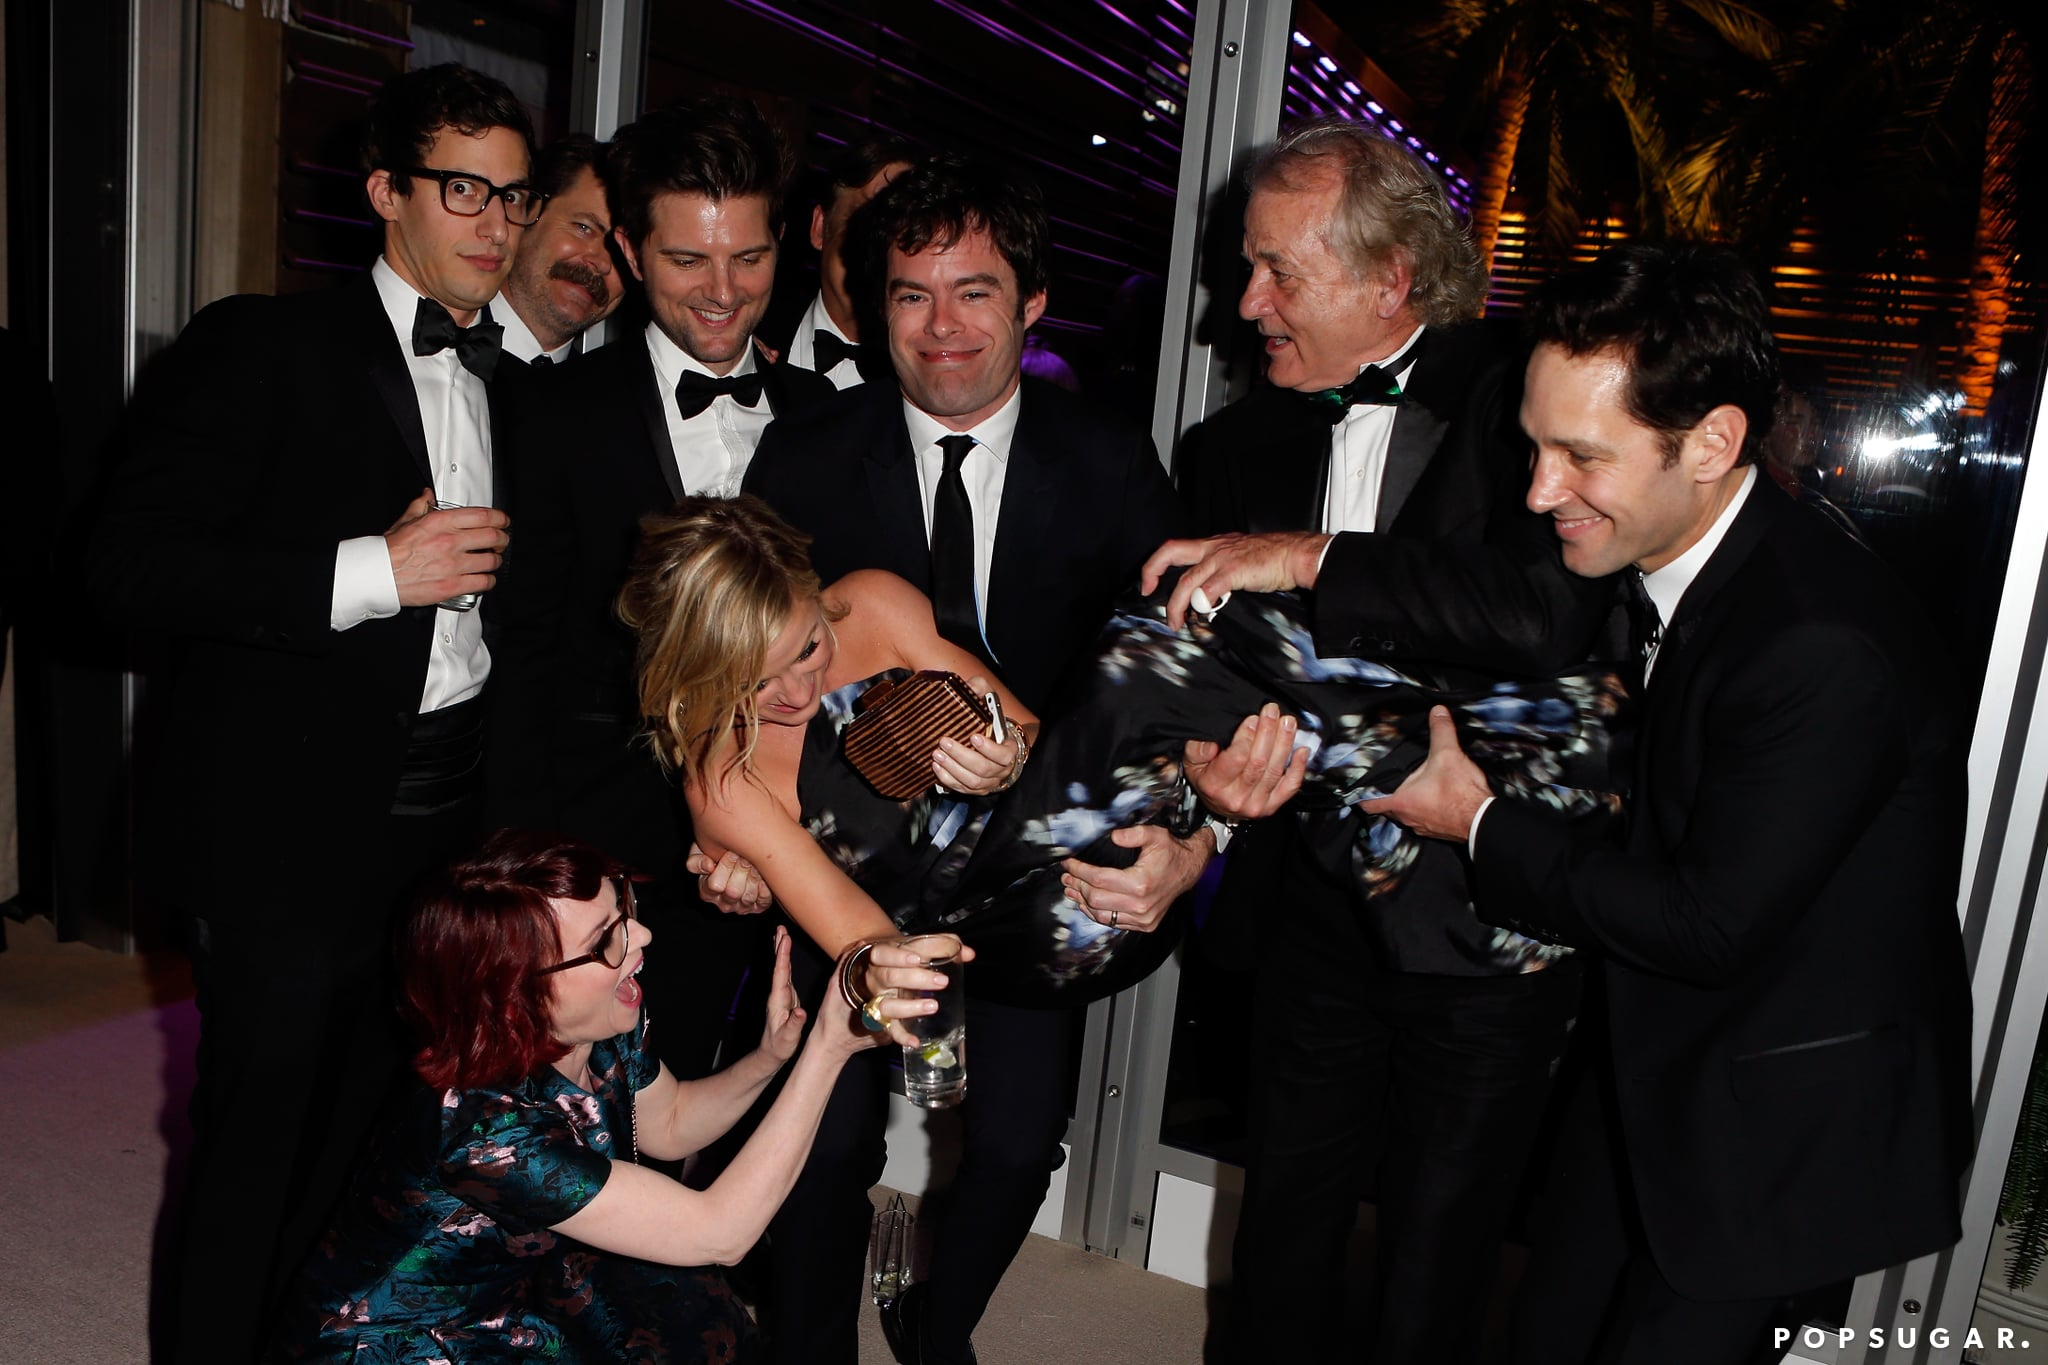 Amy Poehler got a serious lift from some seriously funny friends — Andy Samberg, Nick Offerman, Adam Scott, Megan Mullally, Bill Hader, Bill Murray, and Paul Rudd all tried to carry her during the party!